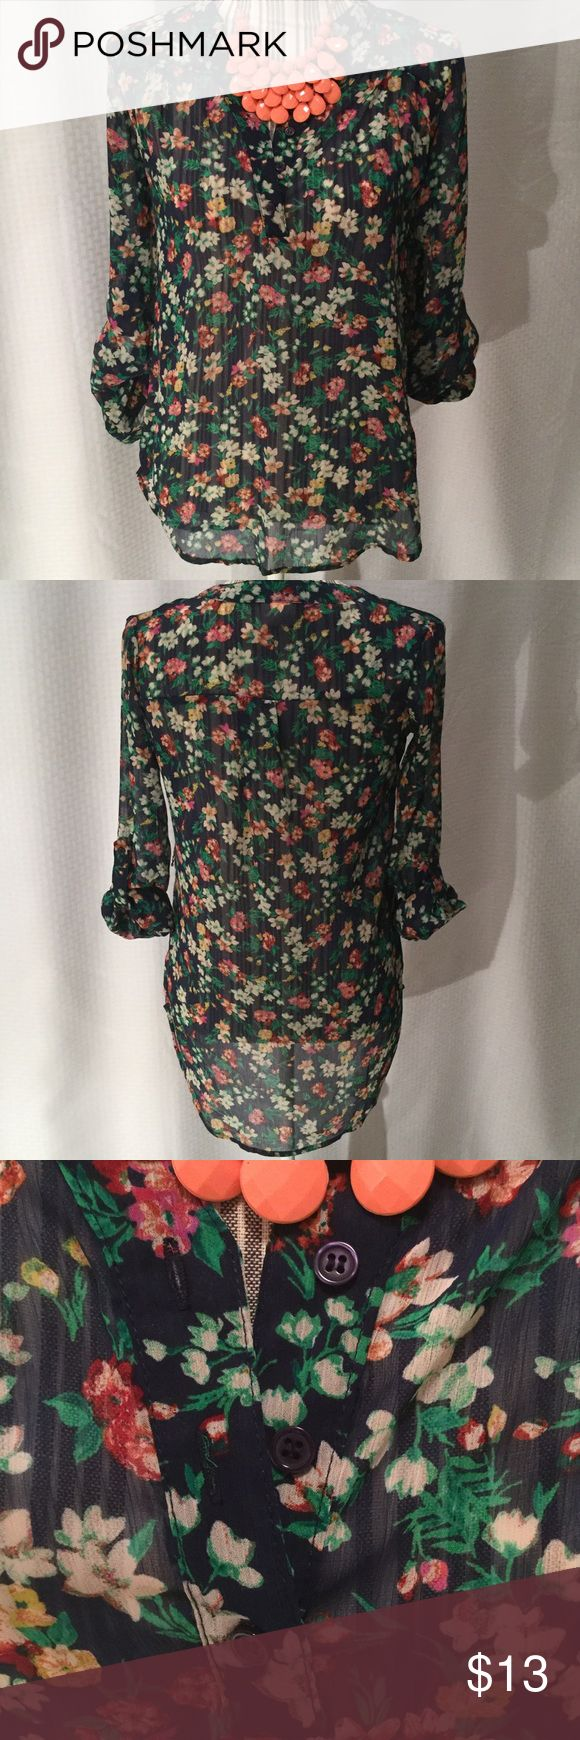 Cute high low flowered blouse  Mossimo brand. Size XS. Sheer so it will need a tank underneath. Has belt loops but I've never worn it with a belt. Sleeves roll up and button. Really cute shirt! Mossimo Supply Co Tops Blouses